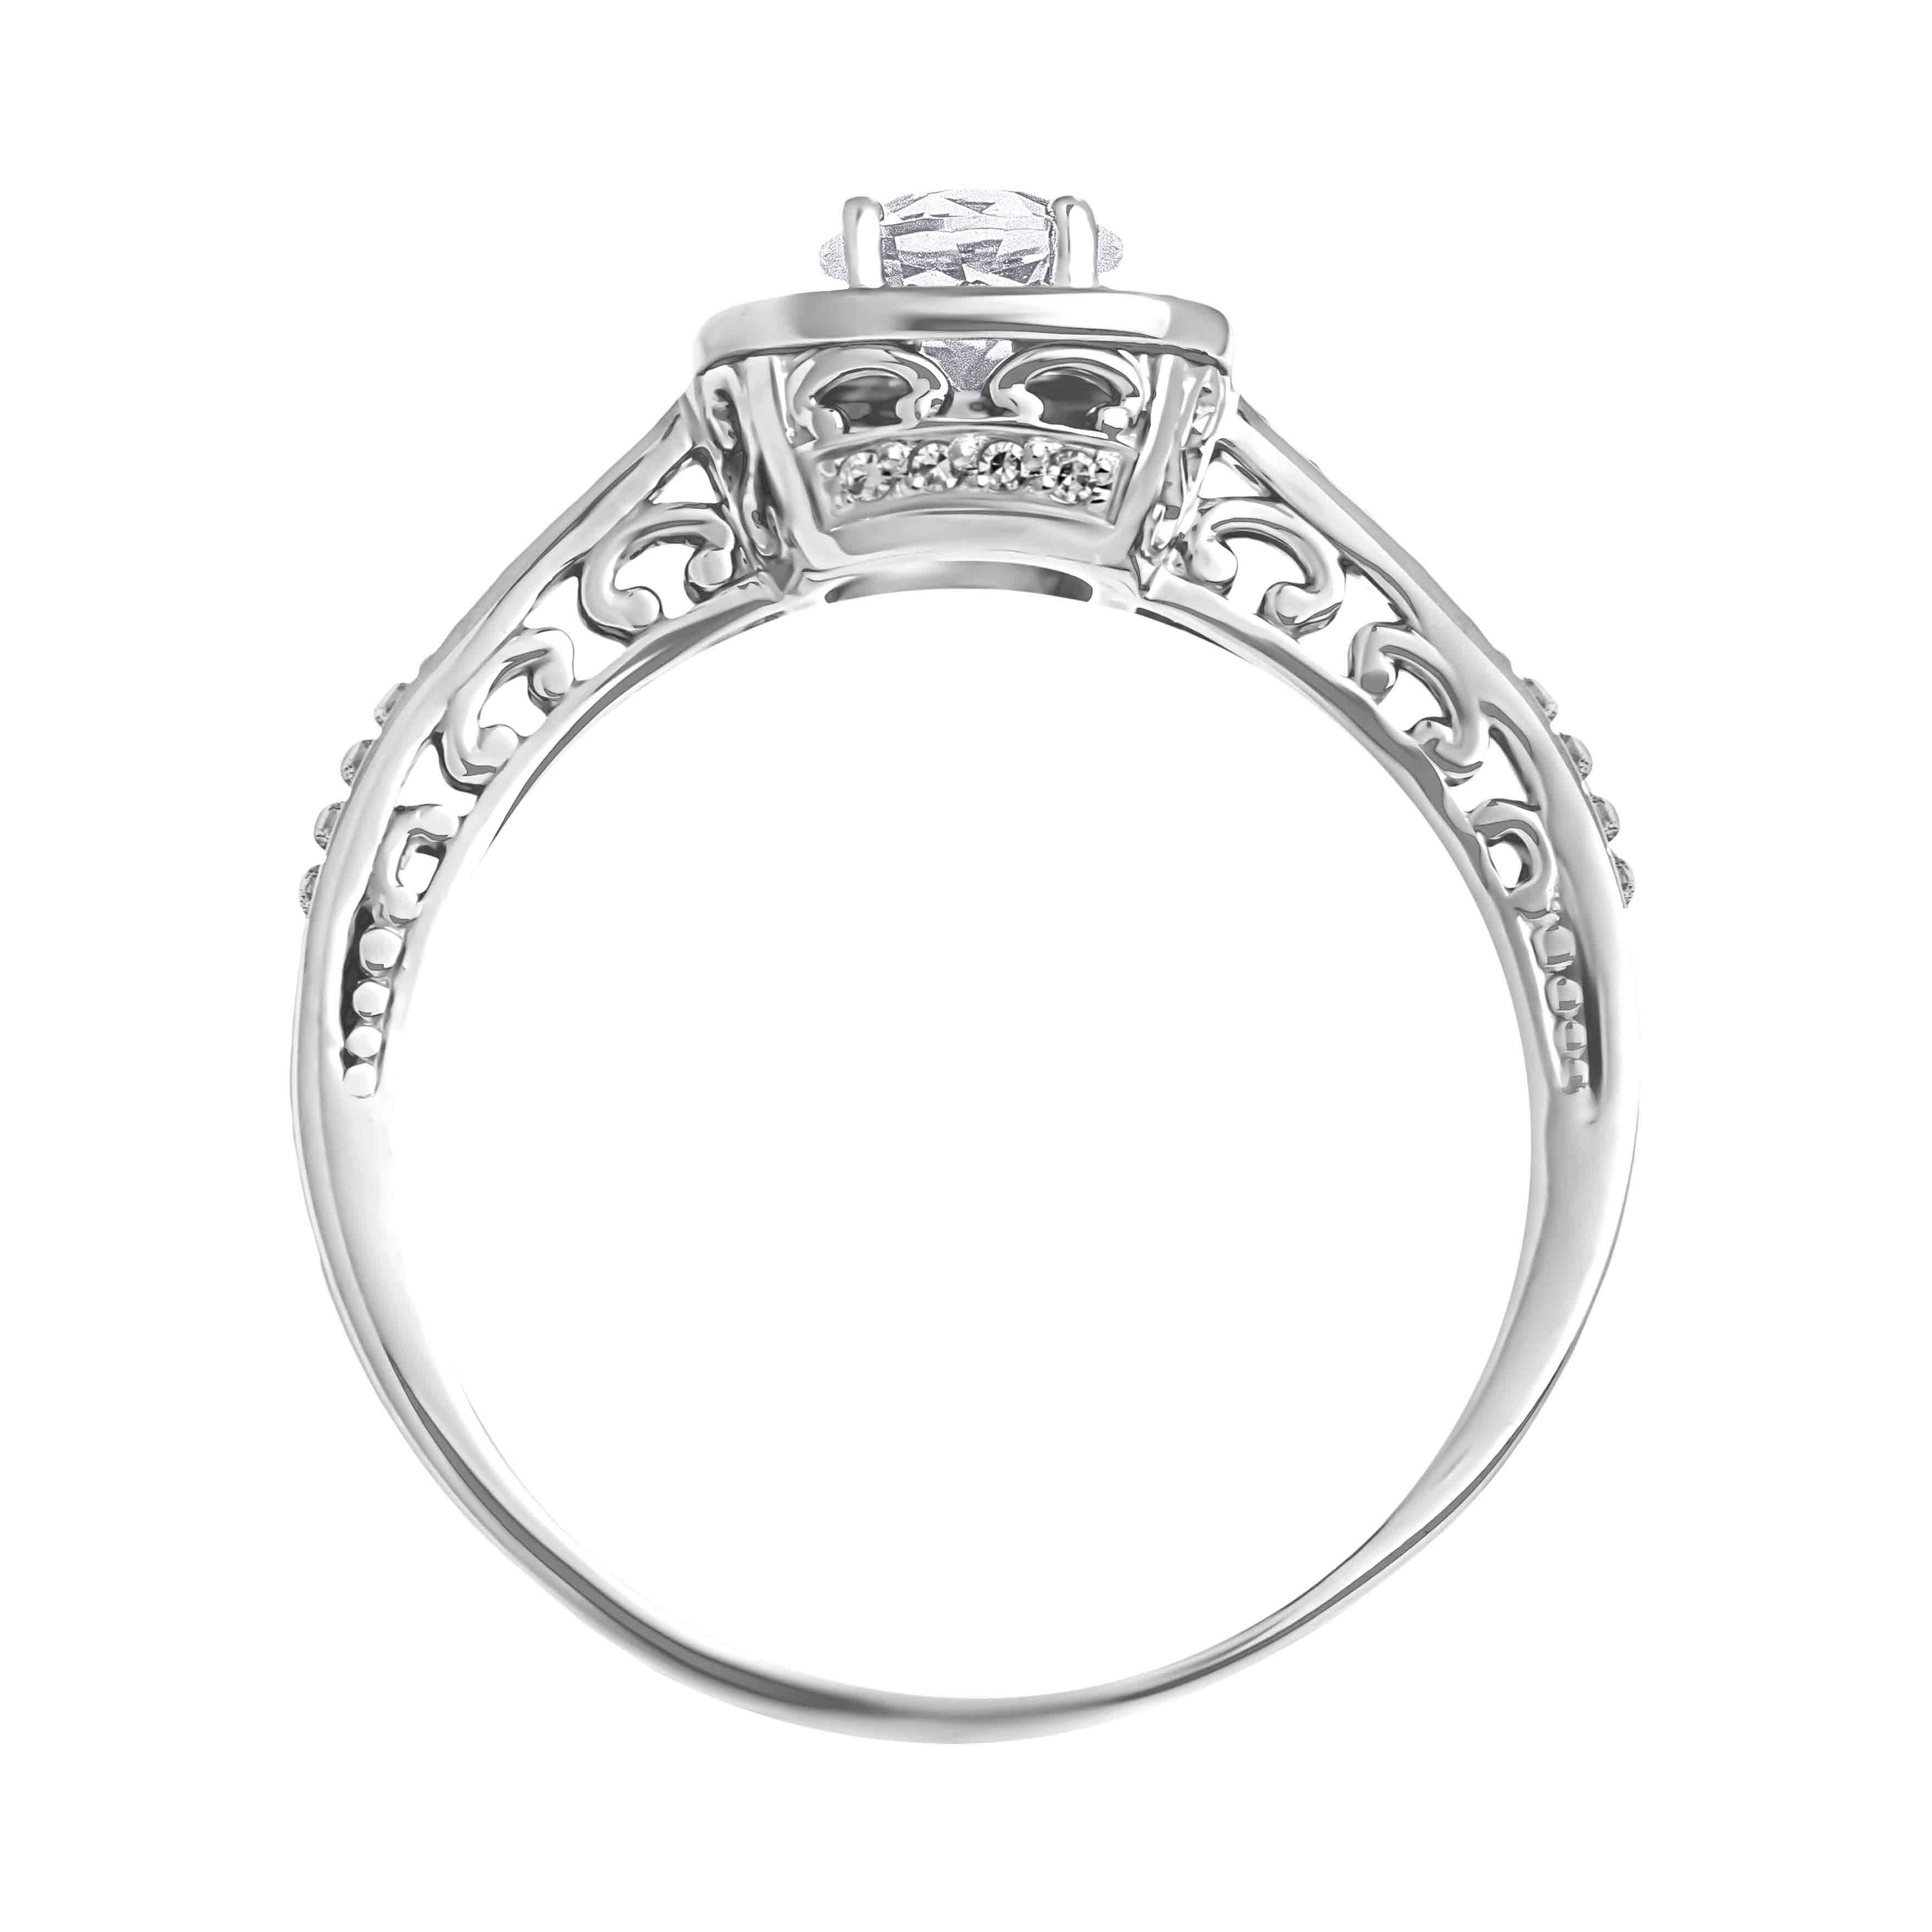 Affordable 14kt white gold Swarovski topaz and diamond engagement ring. View 3